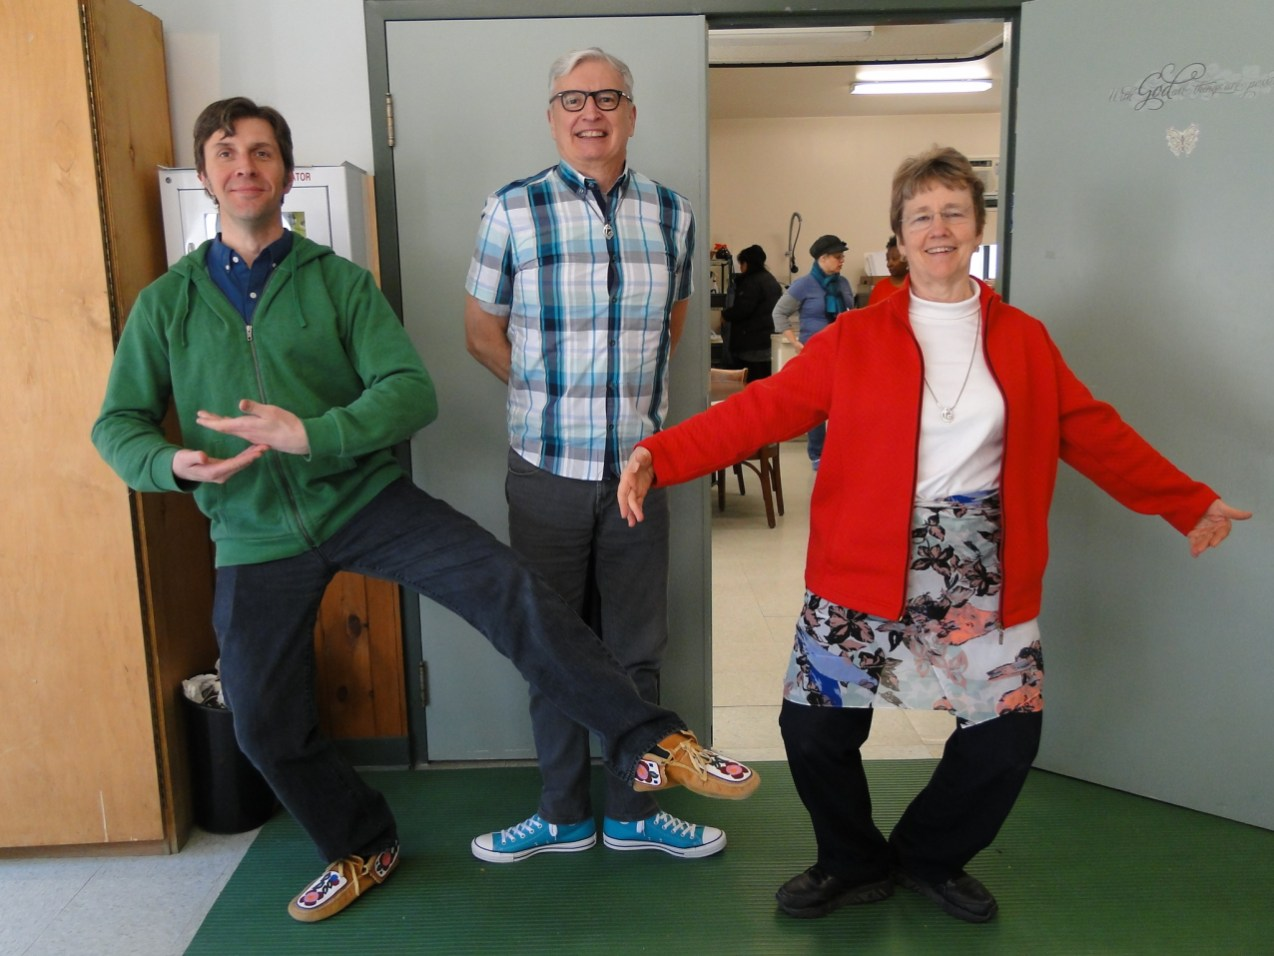 Scott, Ted, and Maylanne show off their balletic skills